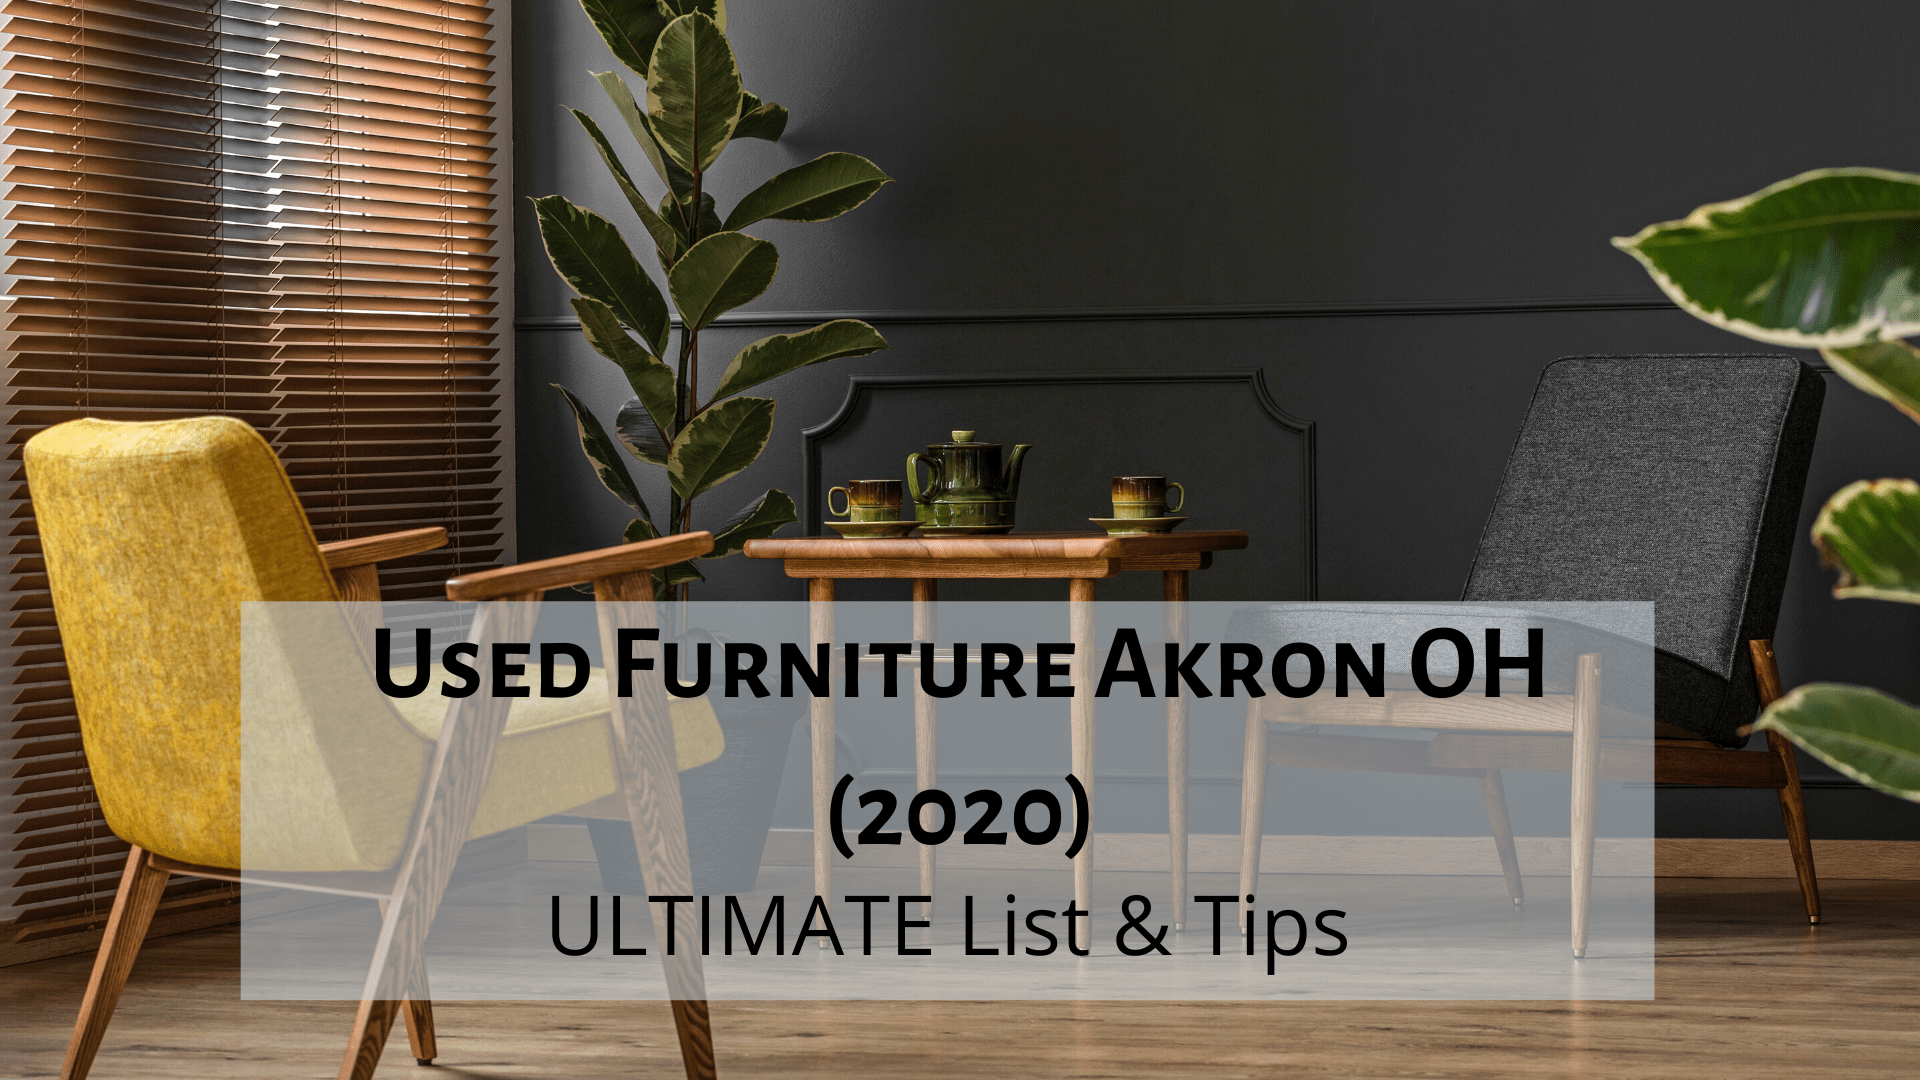 Used Furniture Akron Oh 2020 Ultimate List Tips Krupp Moving Storage